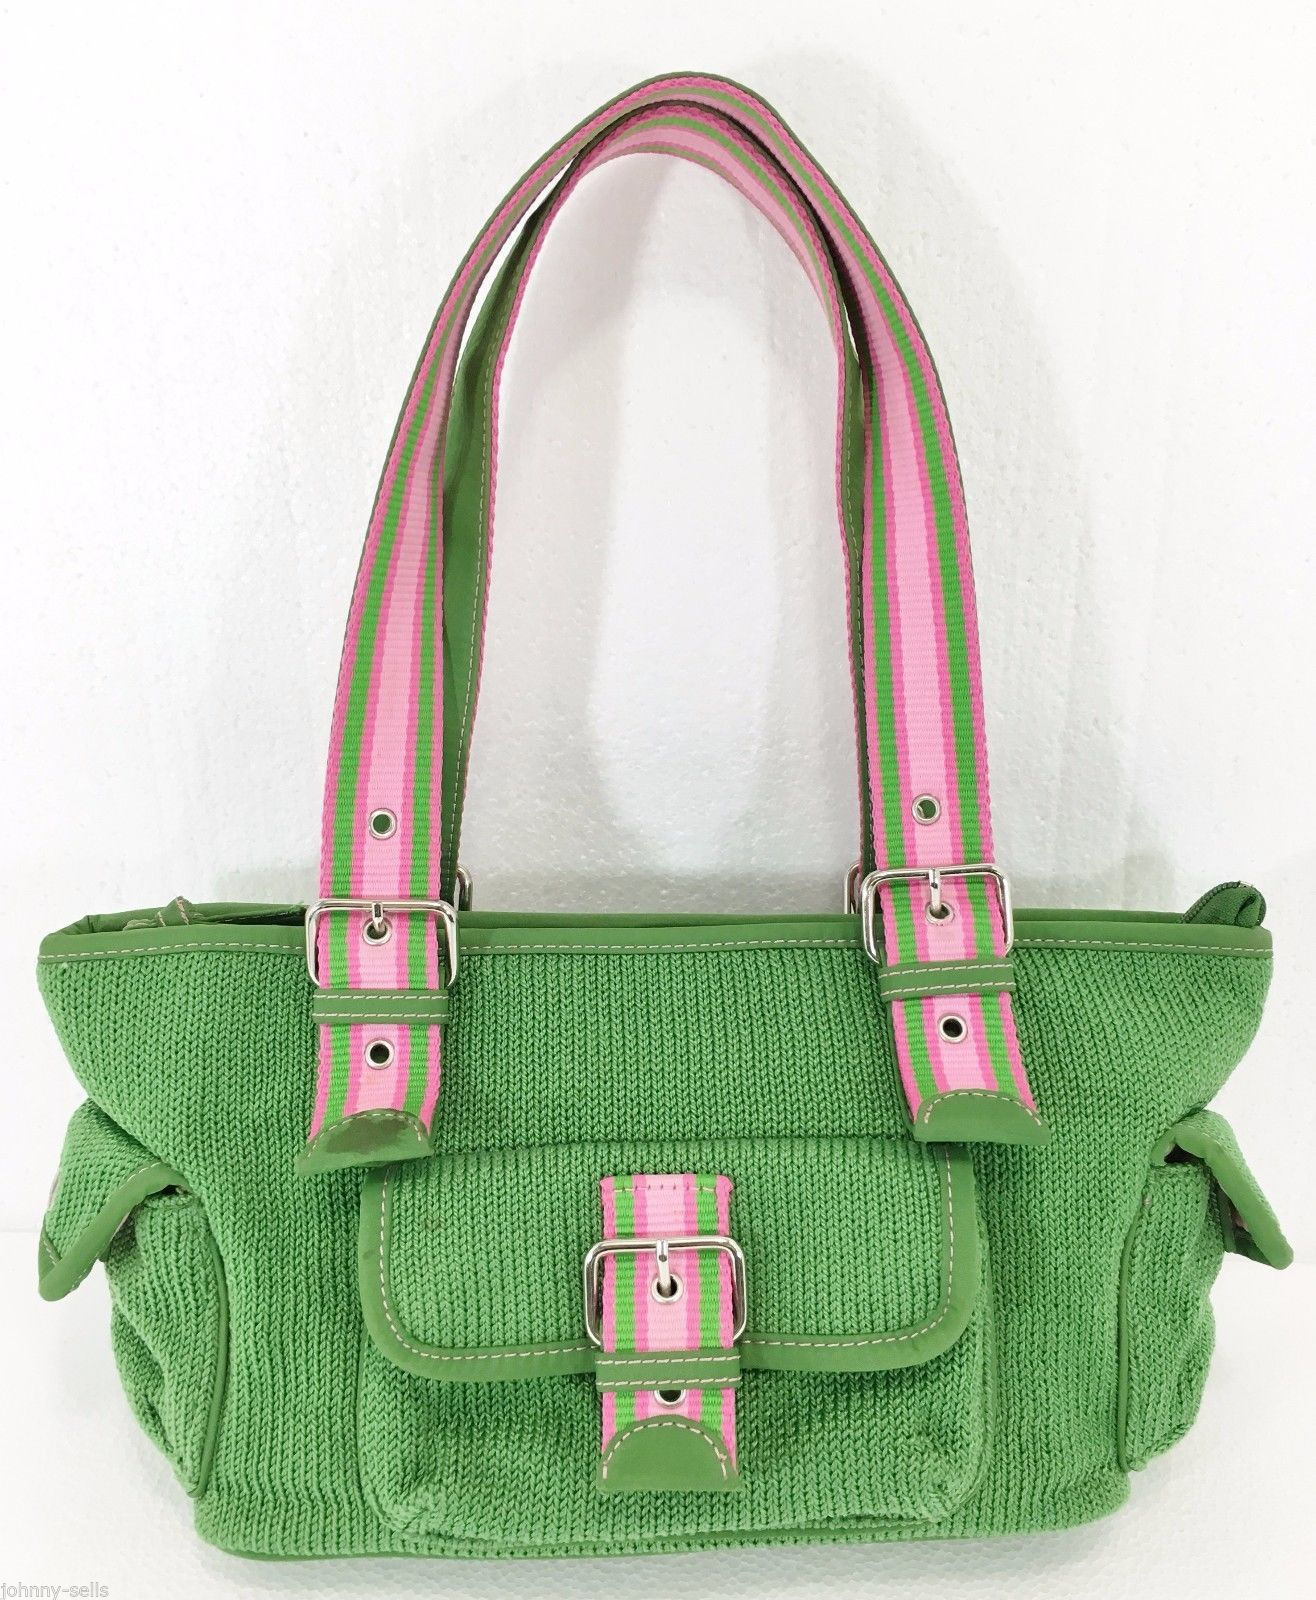 The Sak Kelly Green w Pink Accents Shoulder and 50 similar items 6928f2a68341d